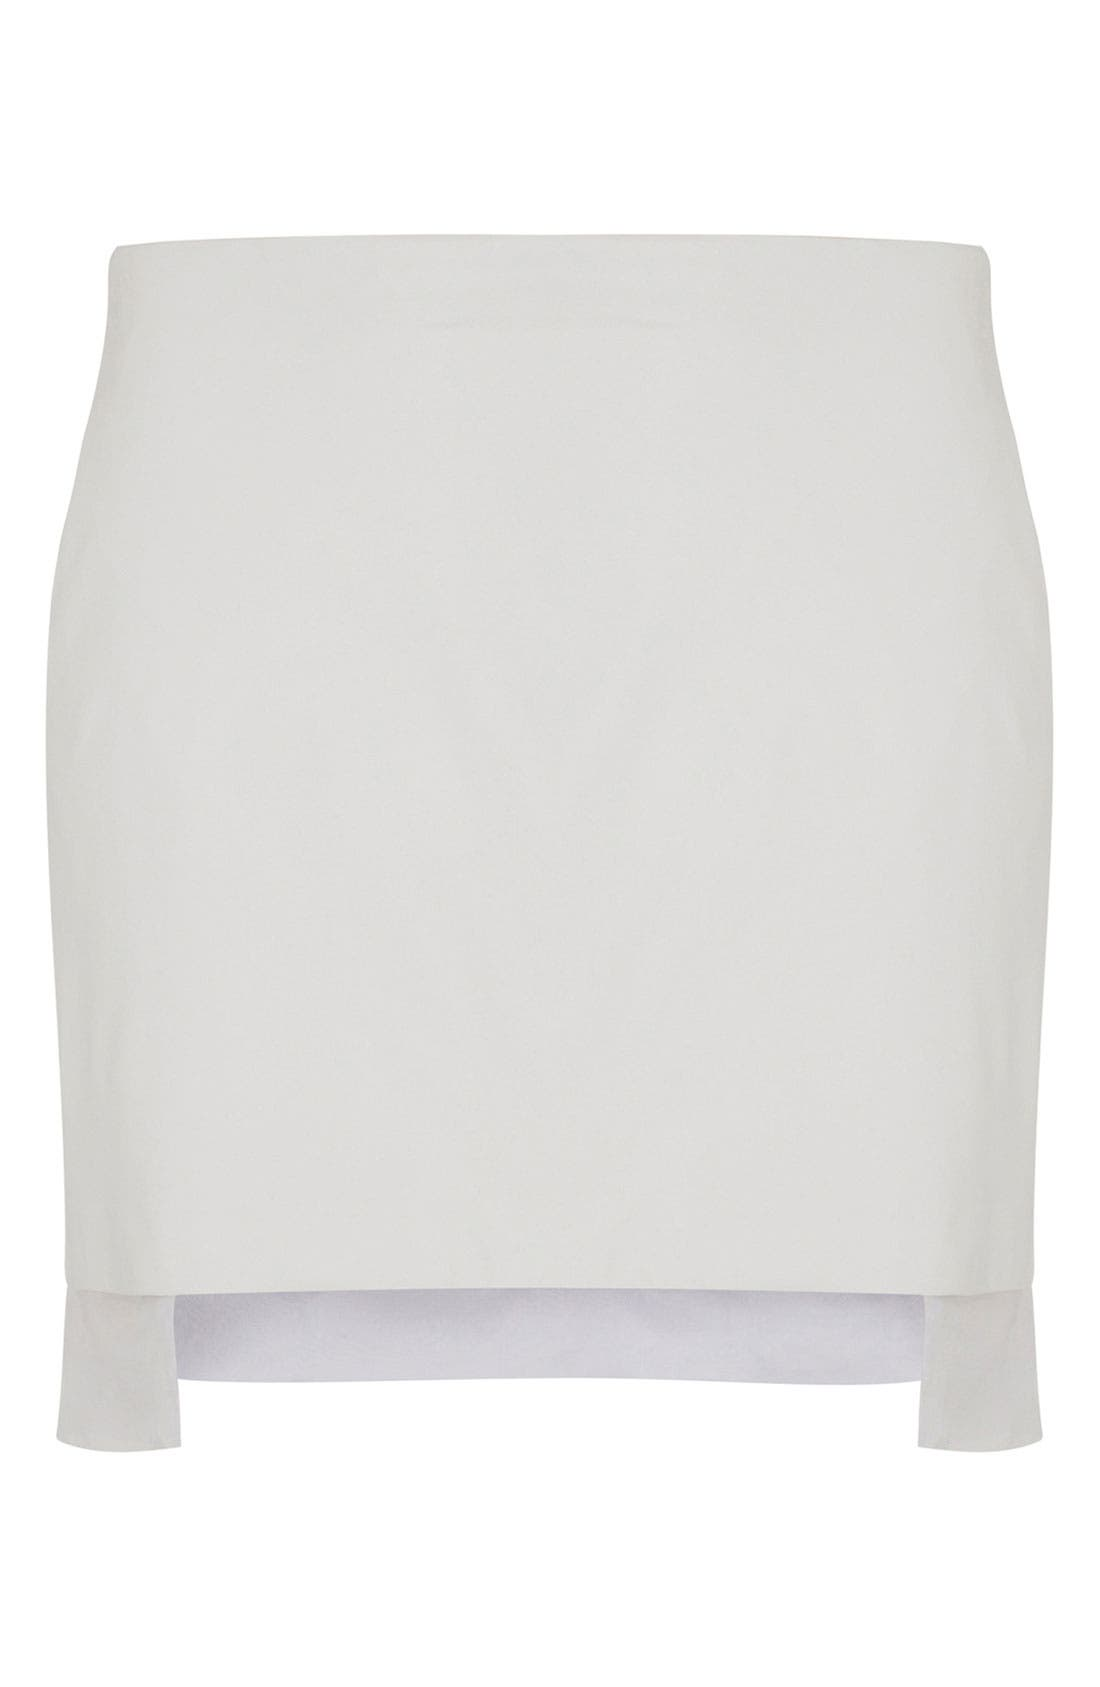 Alternate Image 1 Selected - Topshop Unique Leather Skirt